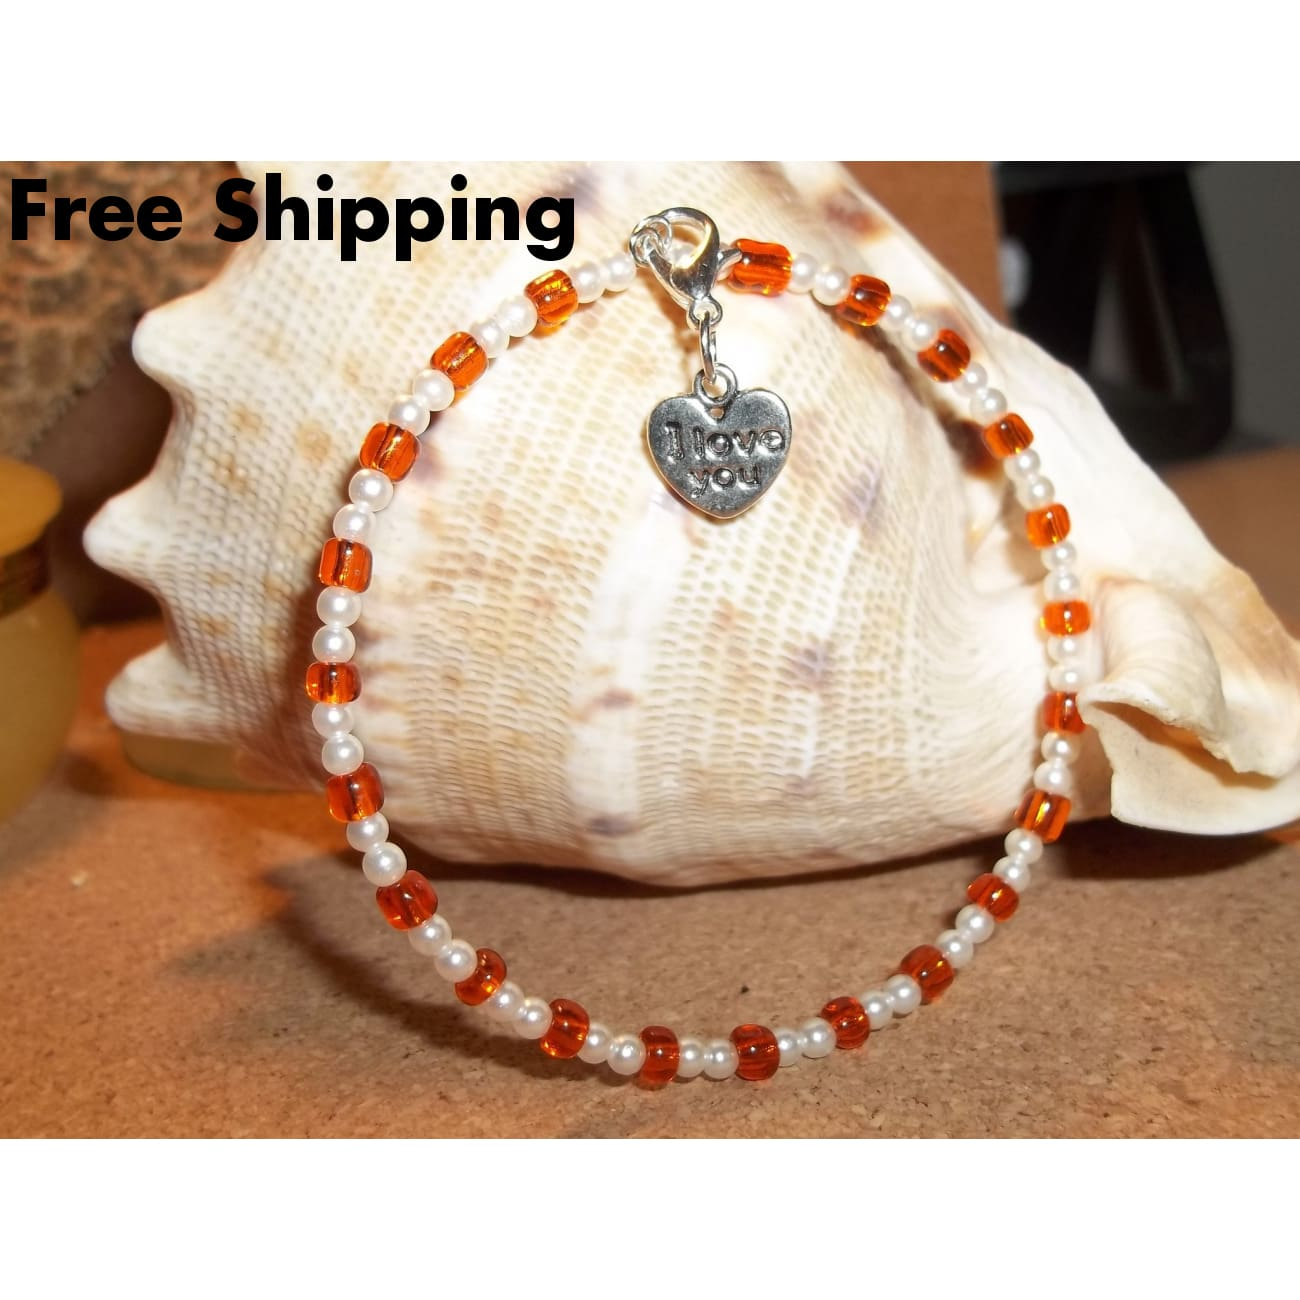 Heart I Love You Orange Glass & White Pearl Beaded Stackablescrafted Charm Bangle Bracelet - Bracelets